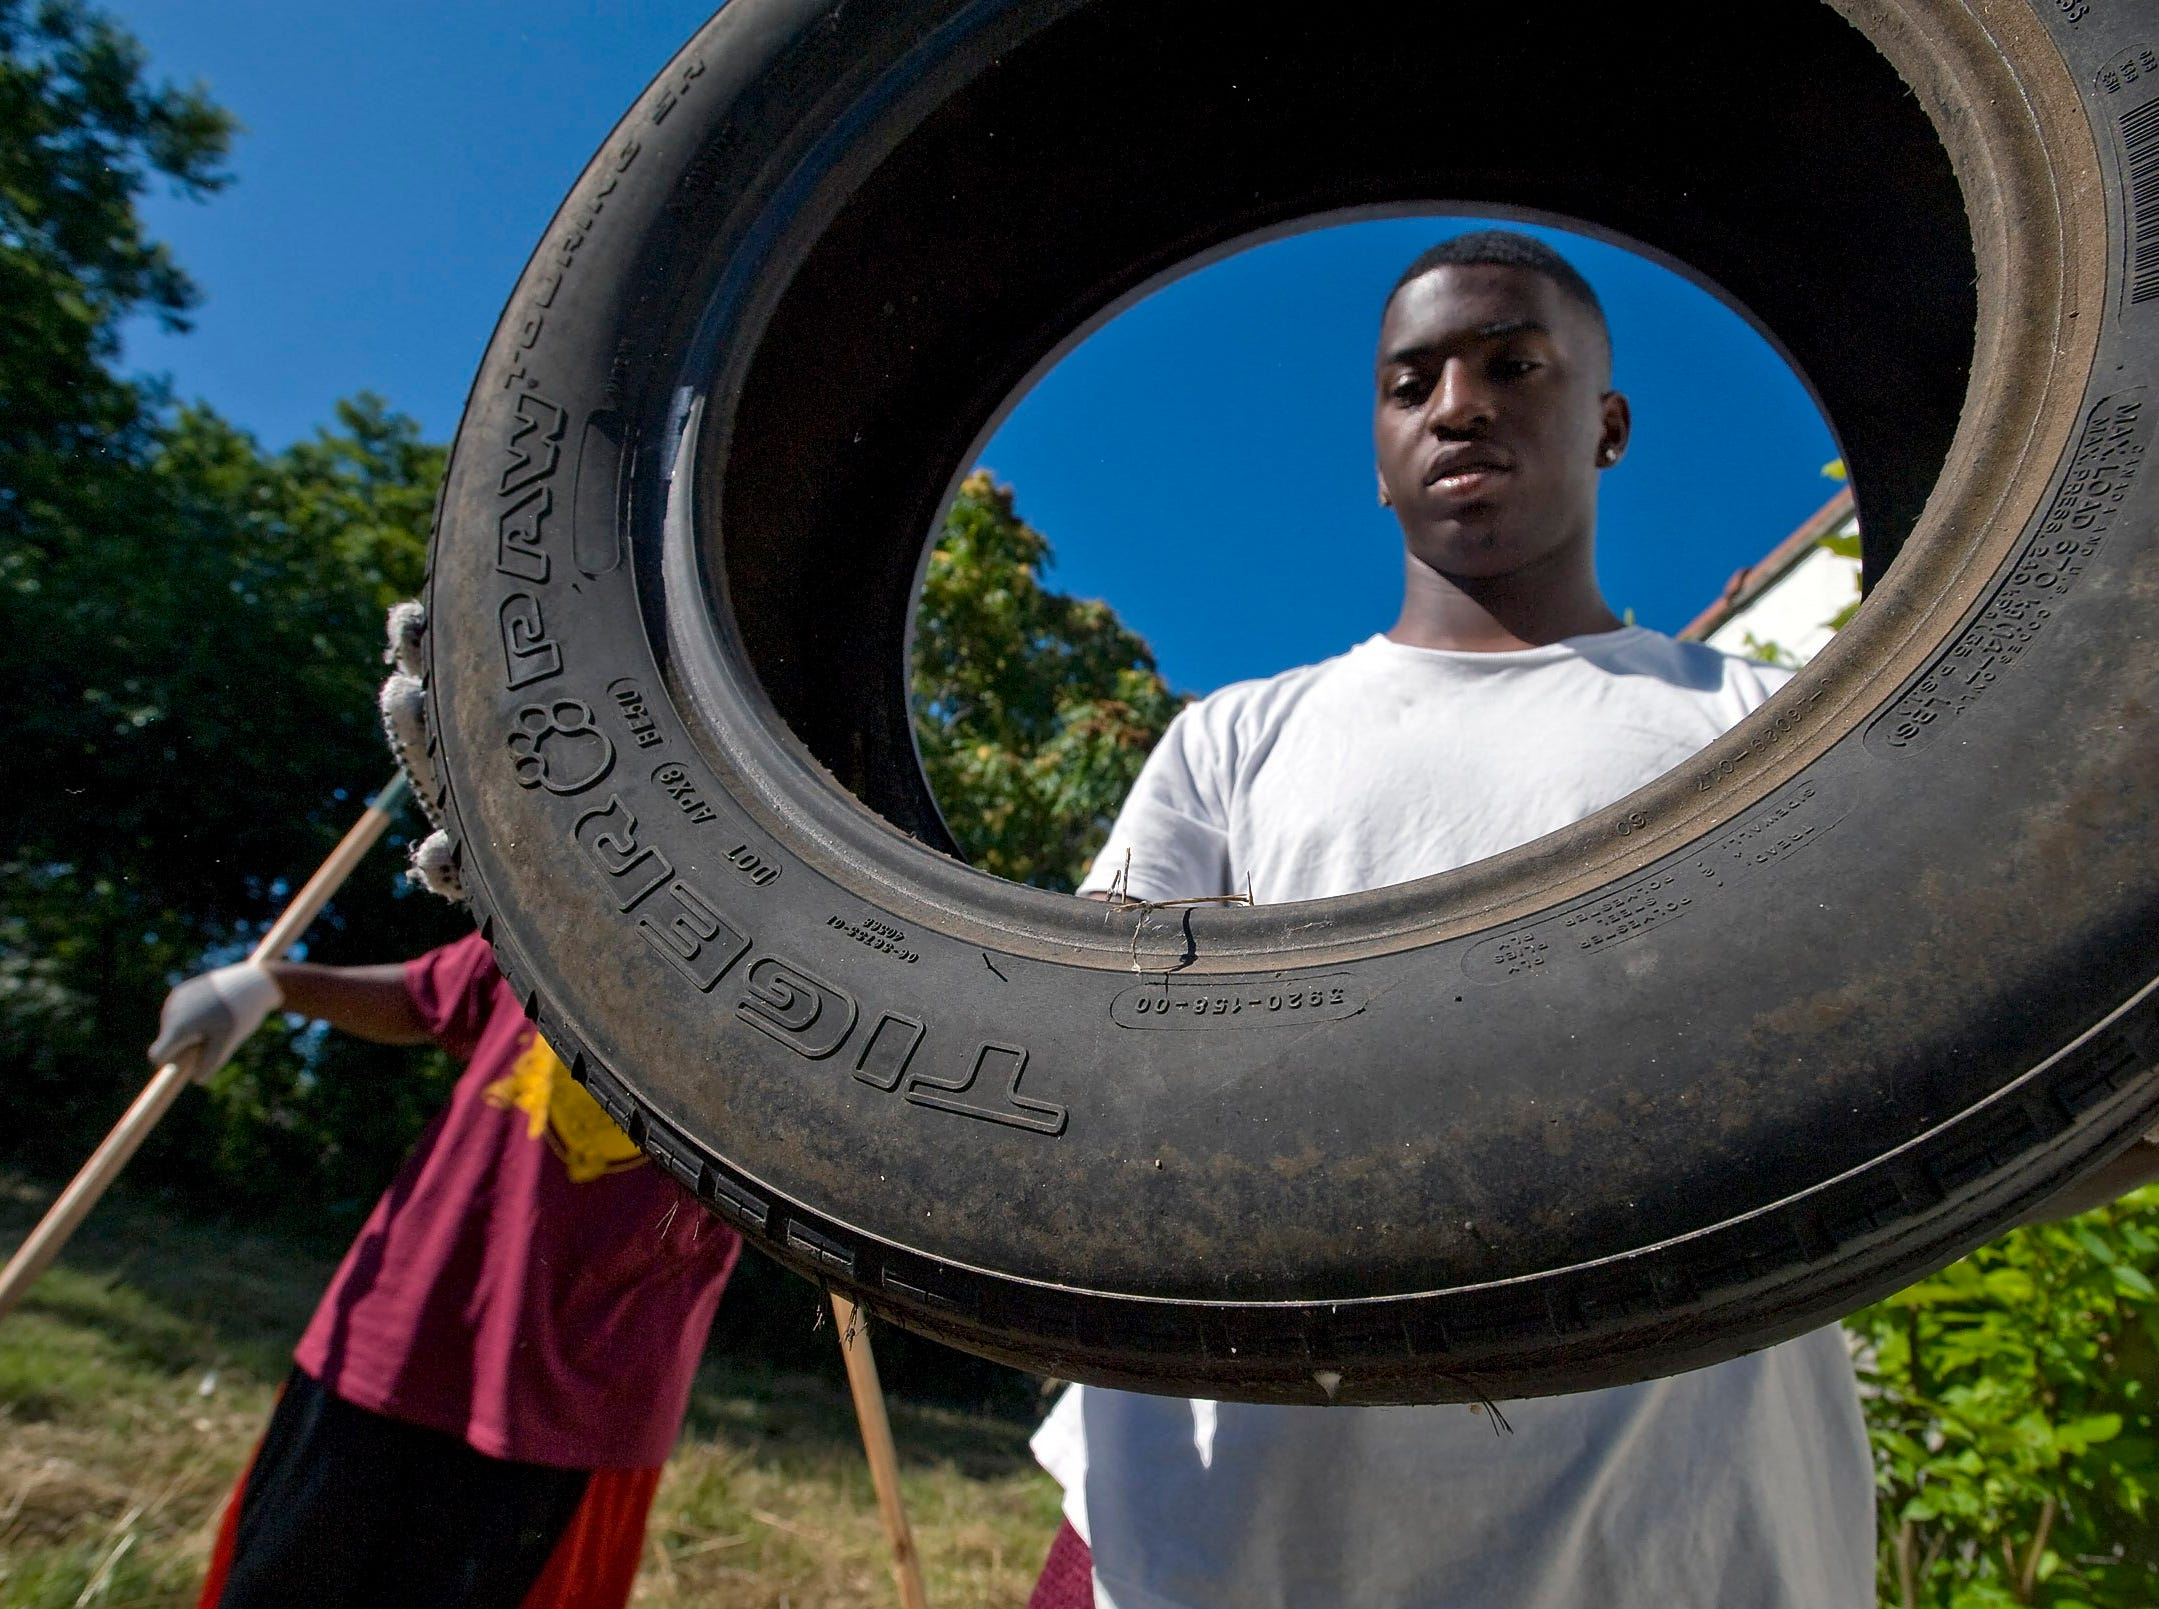 Calvin Alford, 17, a student at Melrose high school carries old tires from around an abandoned building off Park Ave. Over 40 volunteers, children, teens and adults from local schools and church groups spent their Saturday morning where they combined their efforts to clean up their neighborhood near the Melrose football stadium and the Orange Mound Community Center.